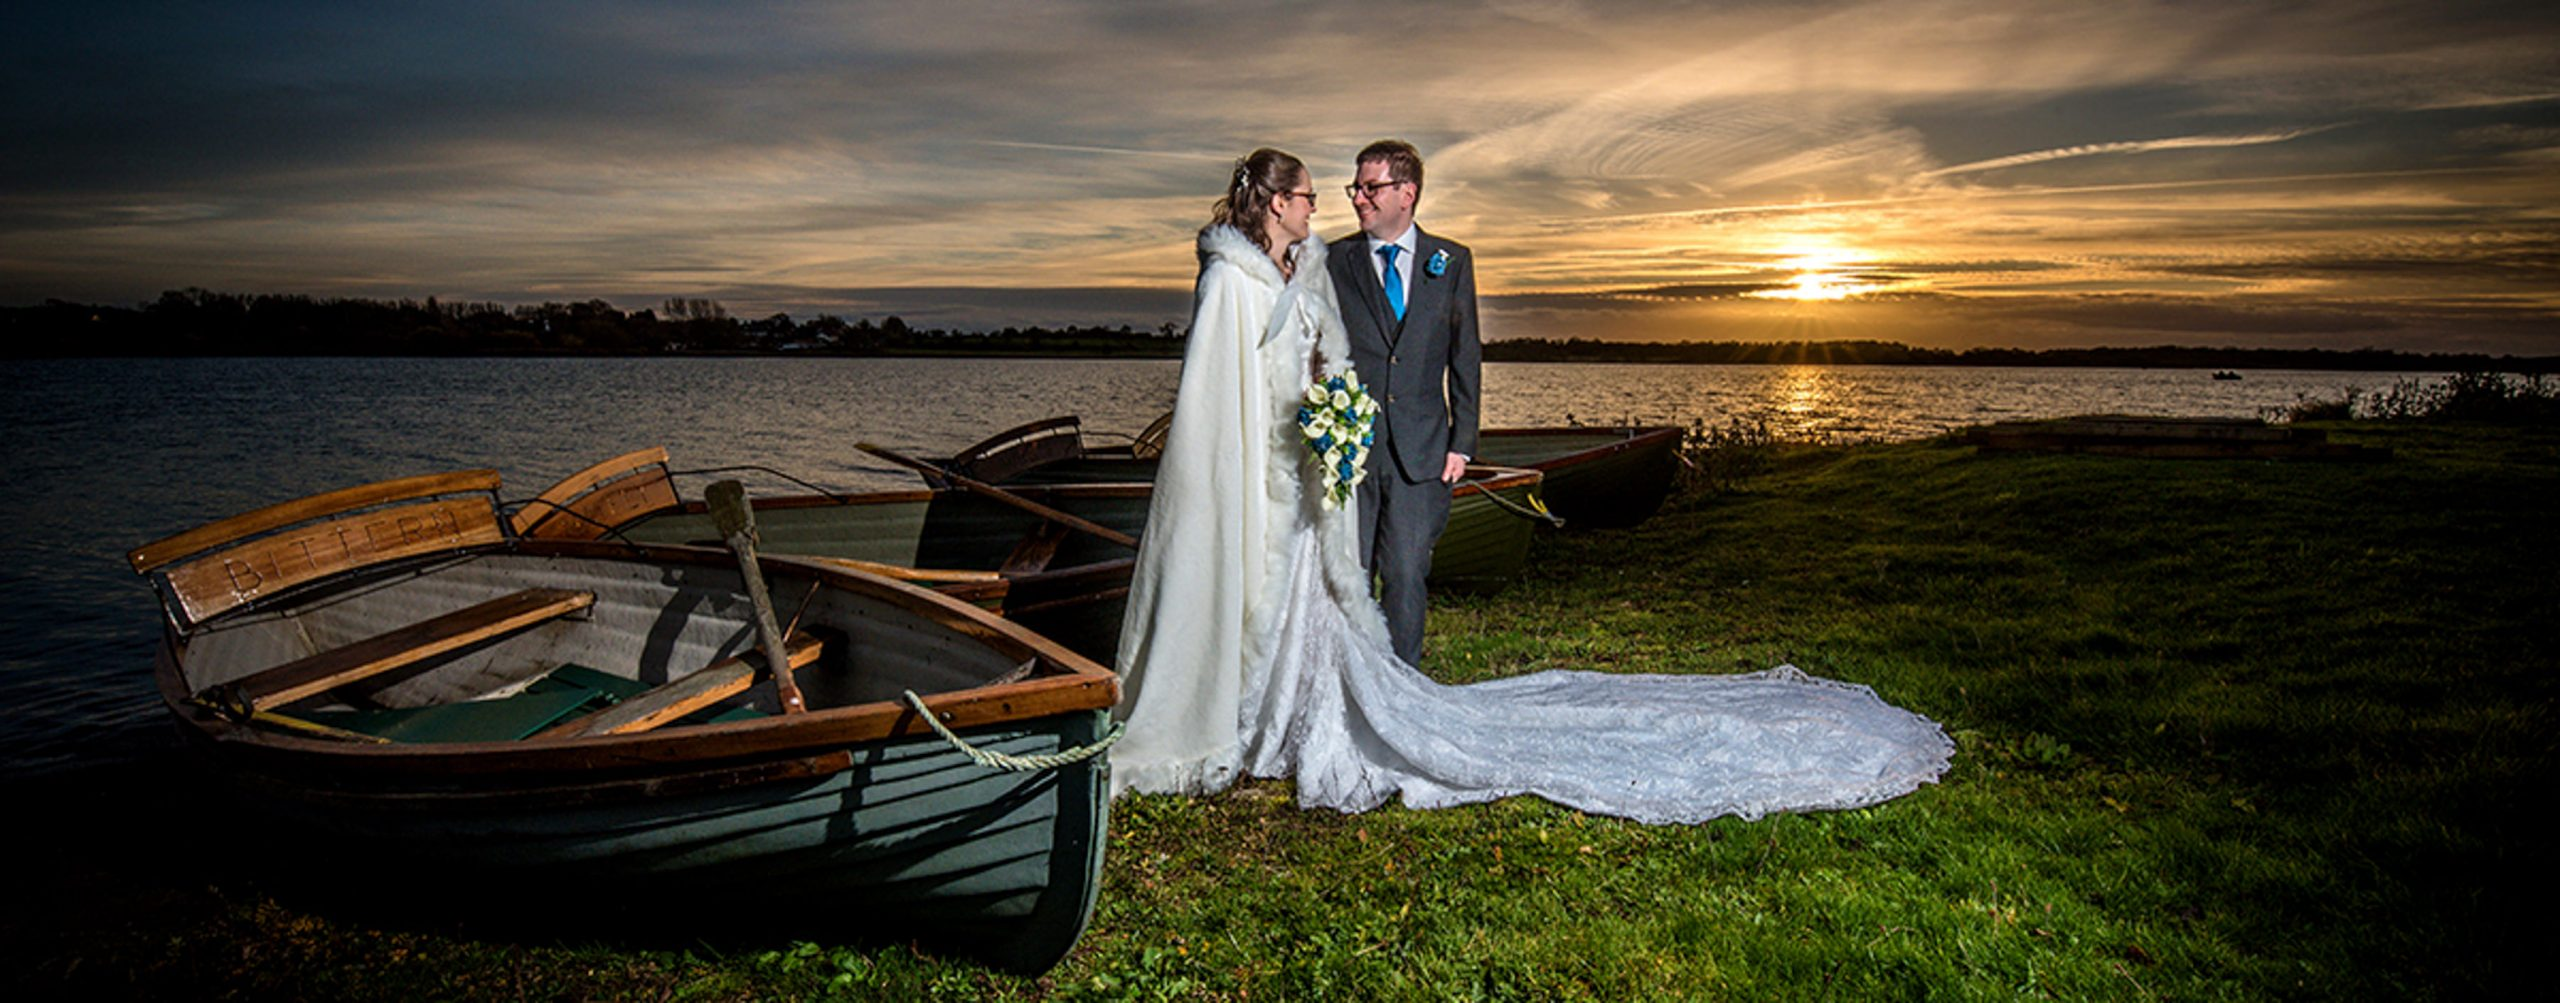 East-Yorkshire-Wedding-Photographer-Hornsea-Mere-Weddings-Abraham-Photography-01